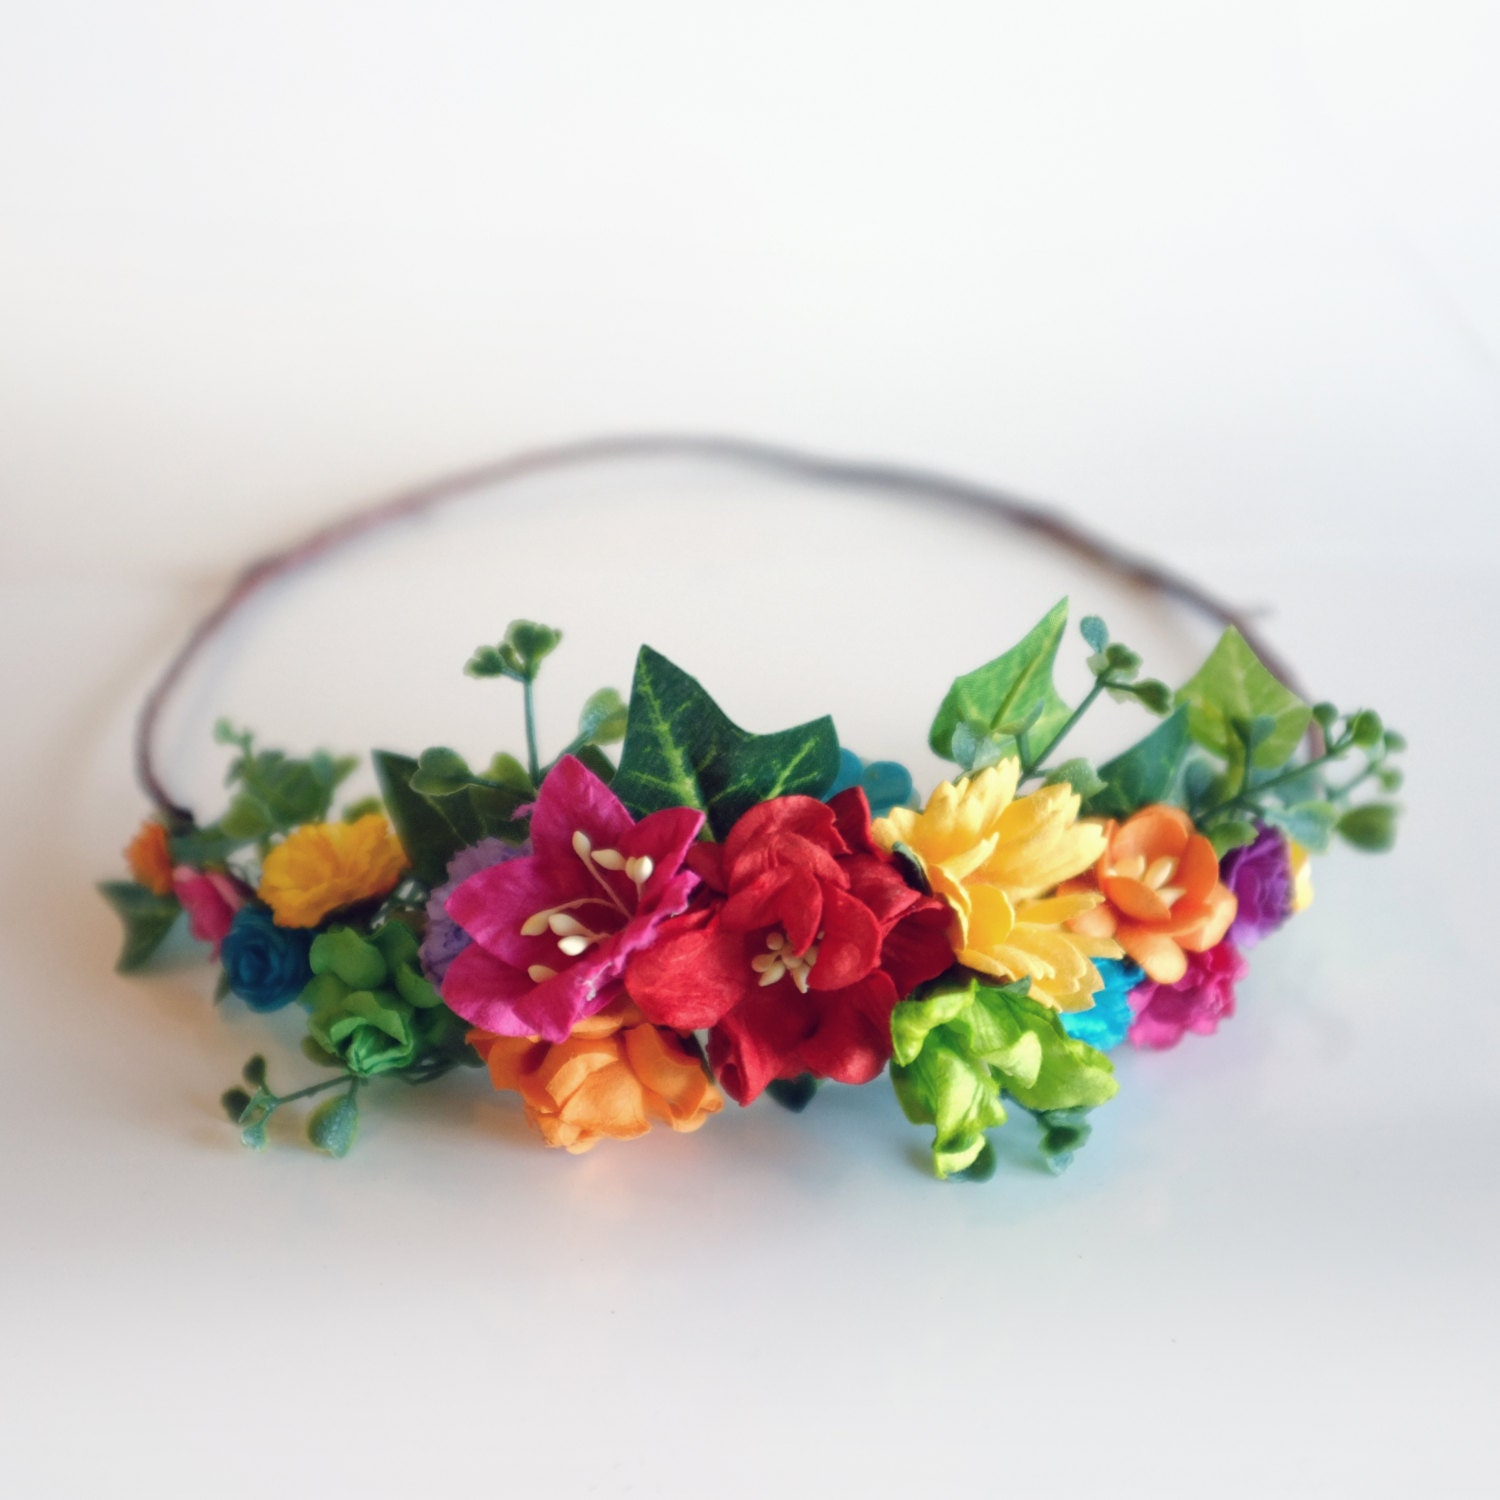 How to Make Your Own Flower Crown Make Your Own Flower Crown